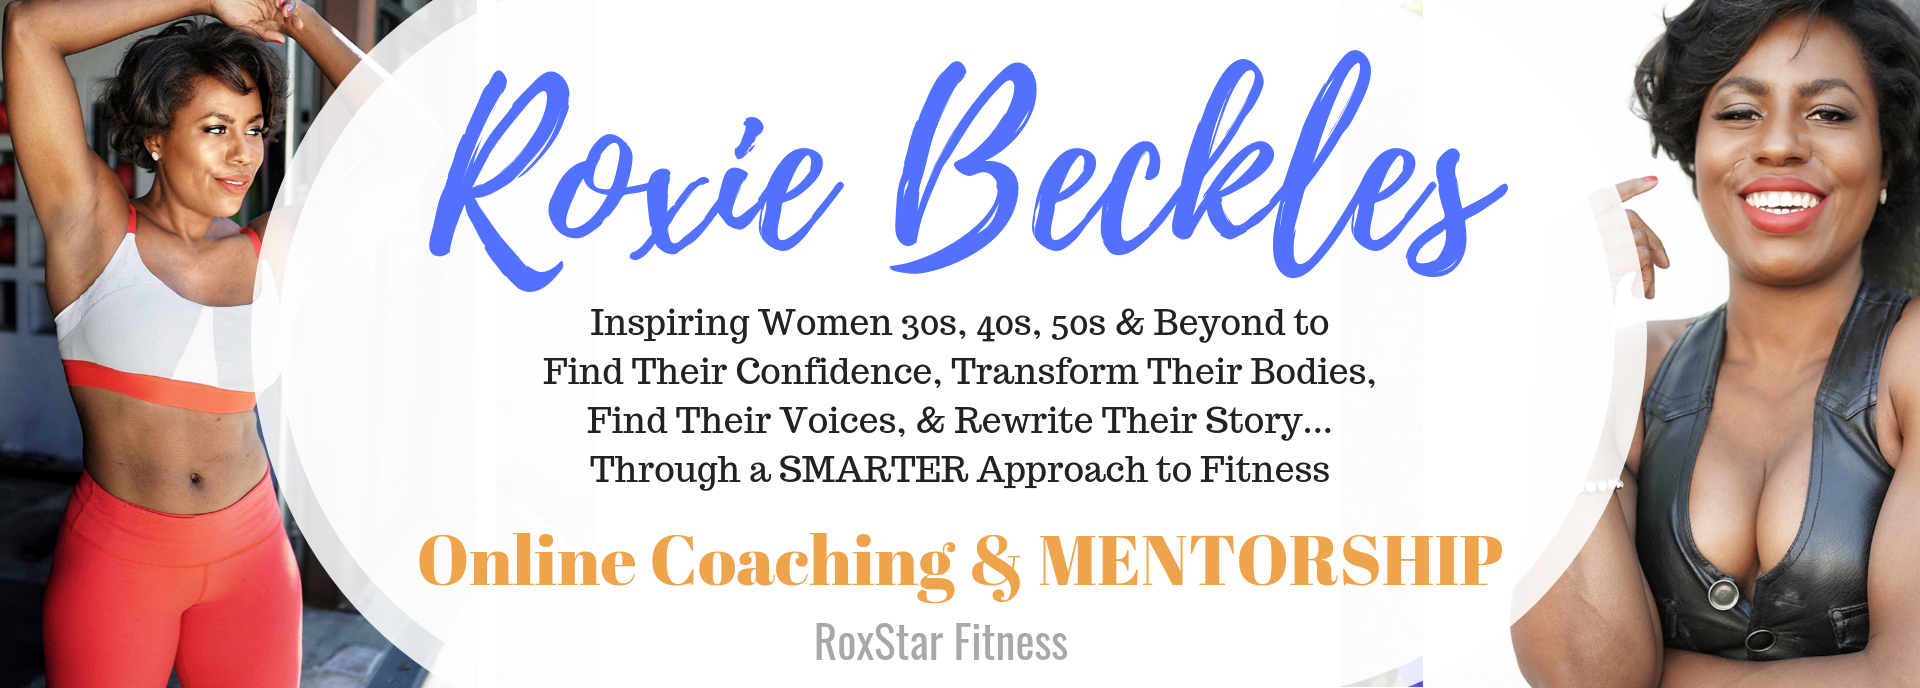 Los Angeles Personal Trainer, Online Contest Prep Coach, Online Coach Roxie Beckles